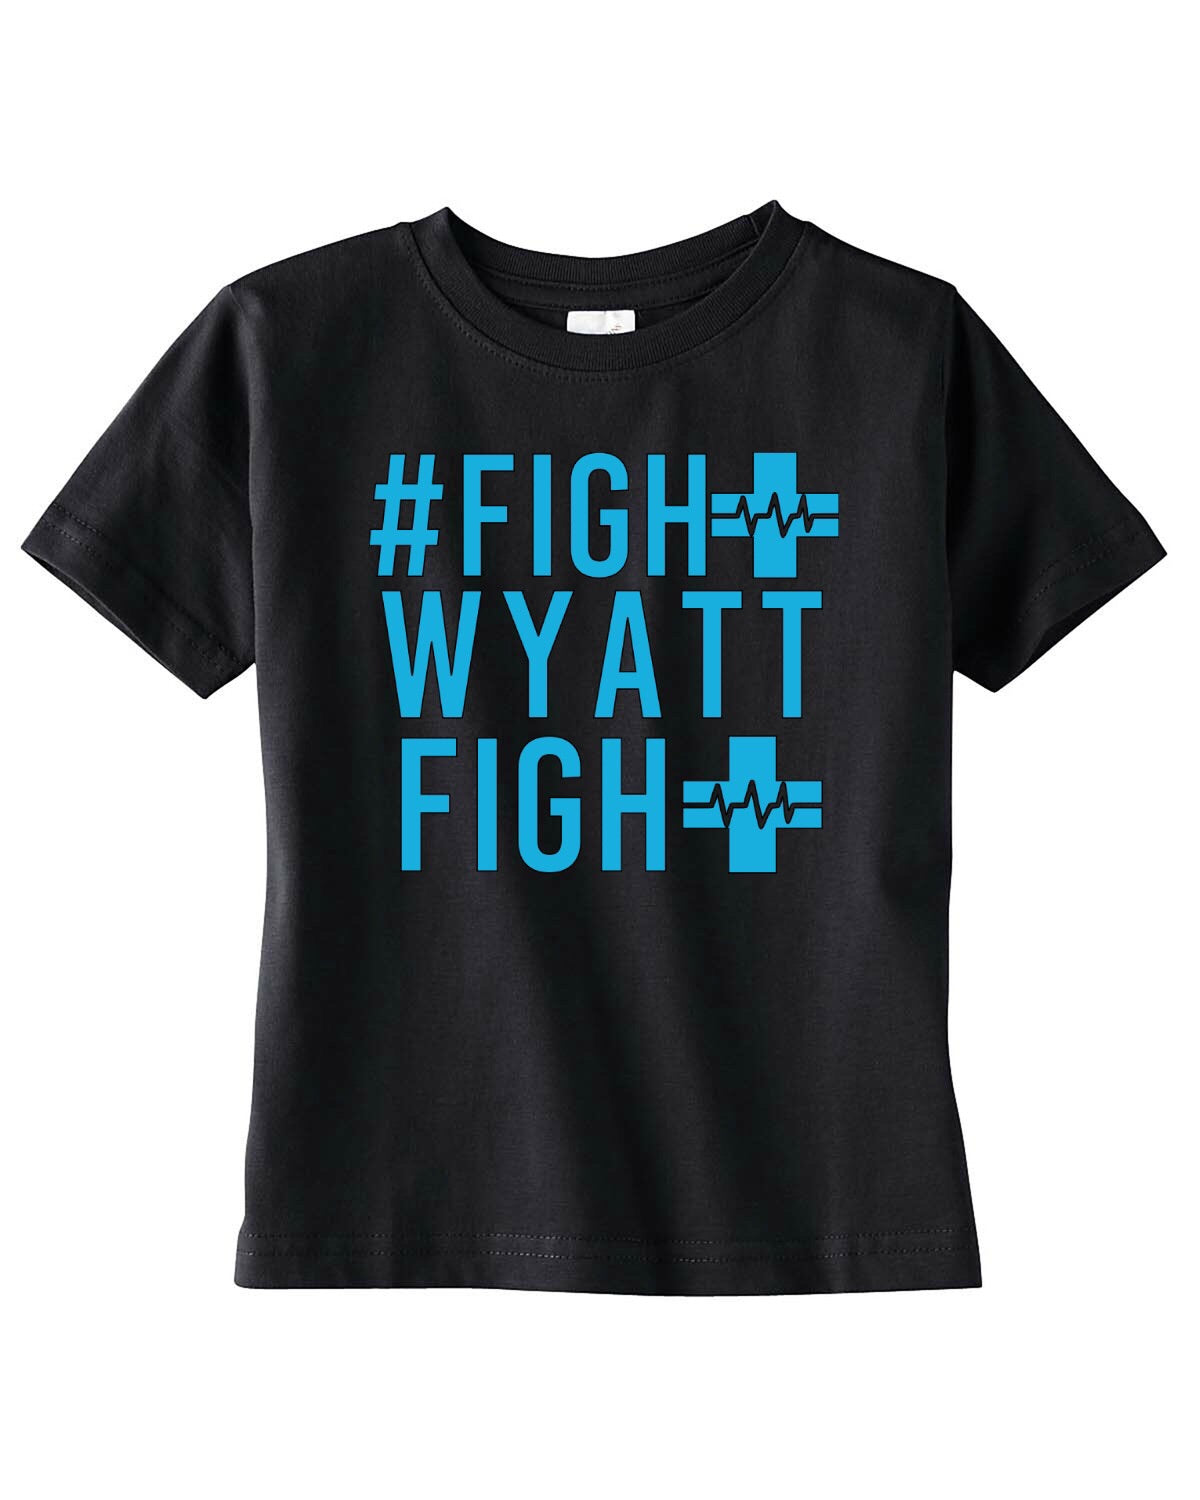 #FightWyattFight